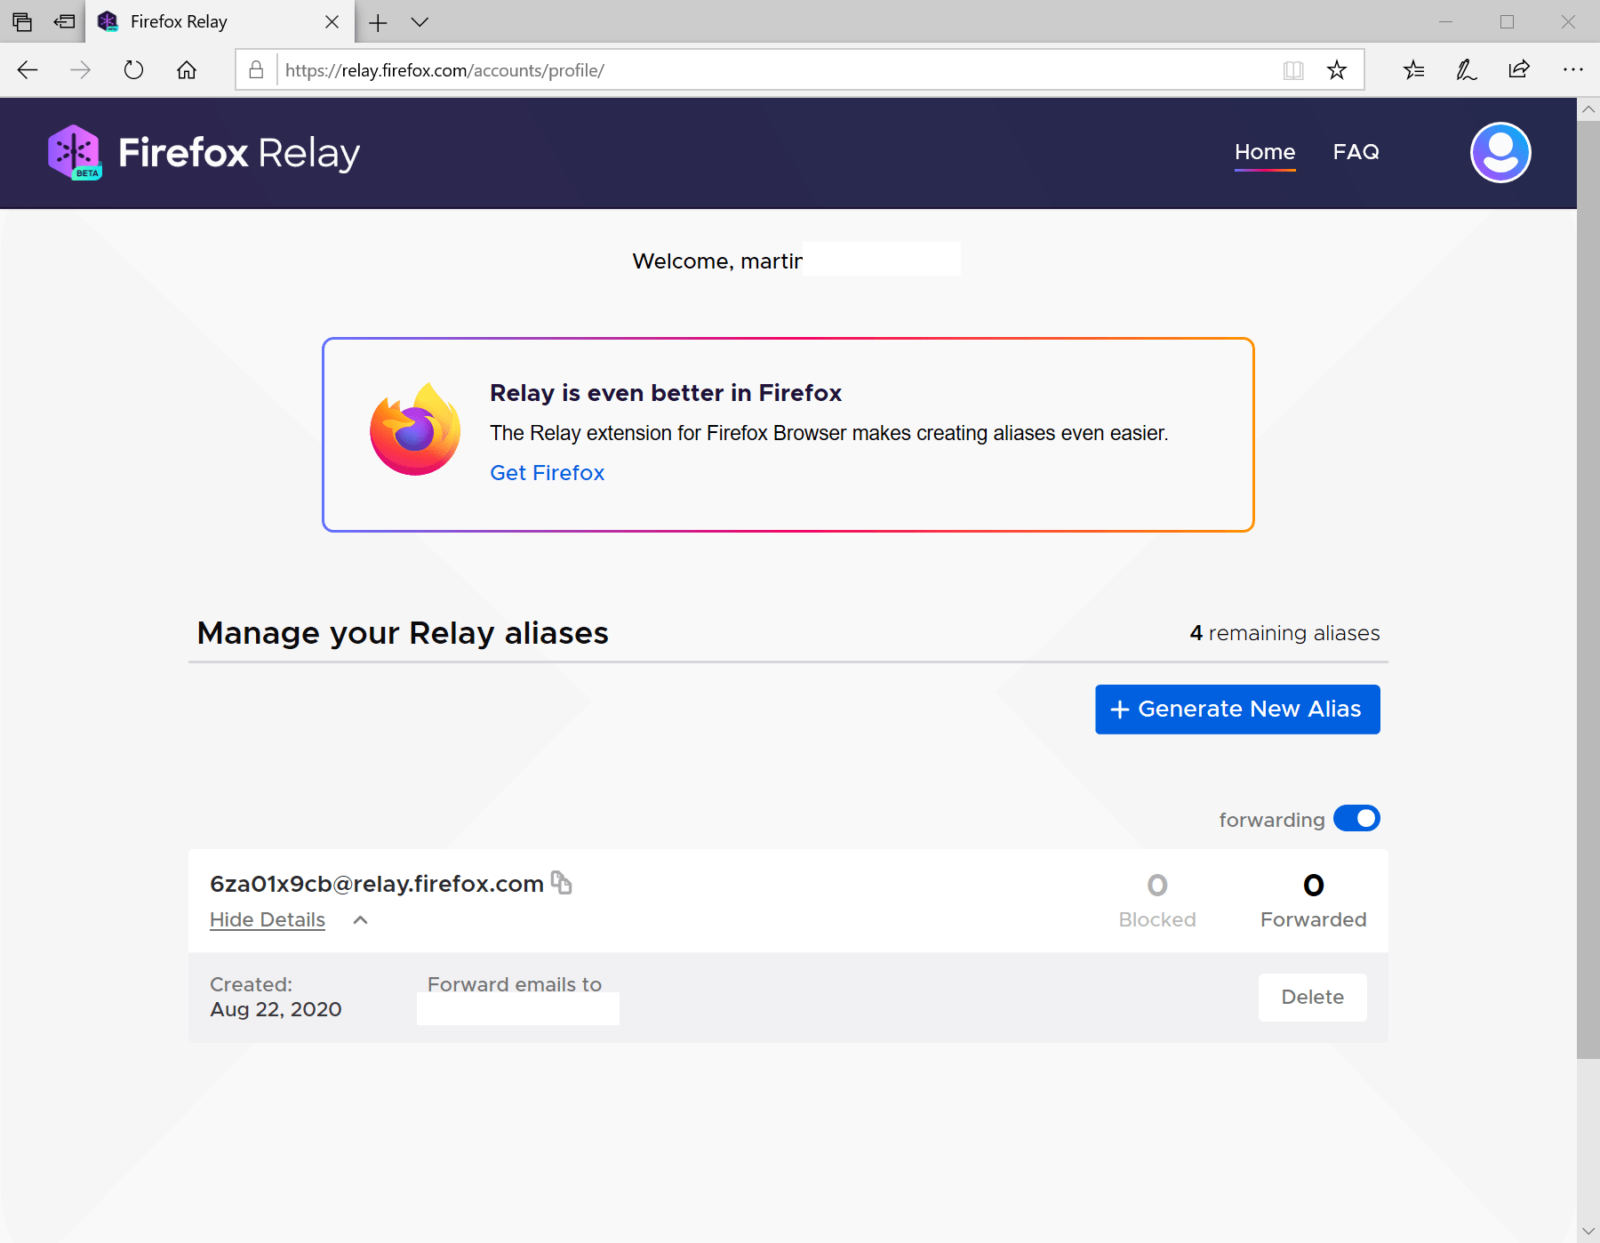 firefox relay interface web